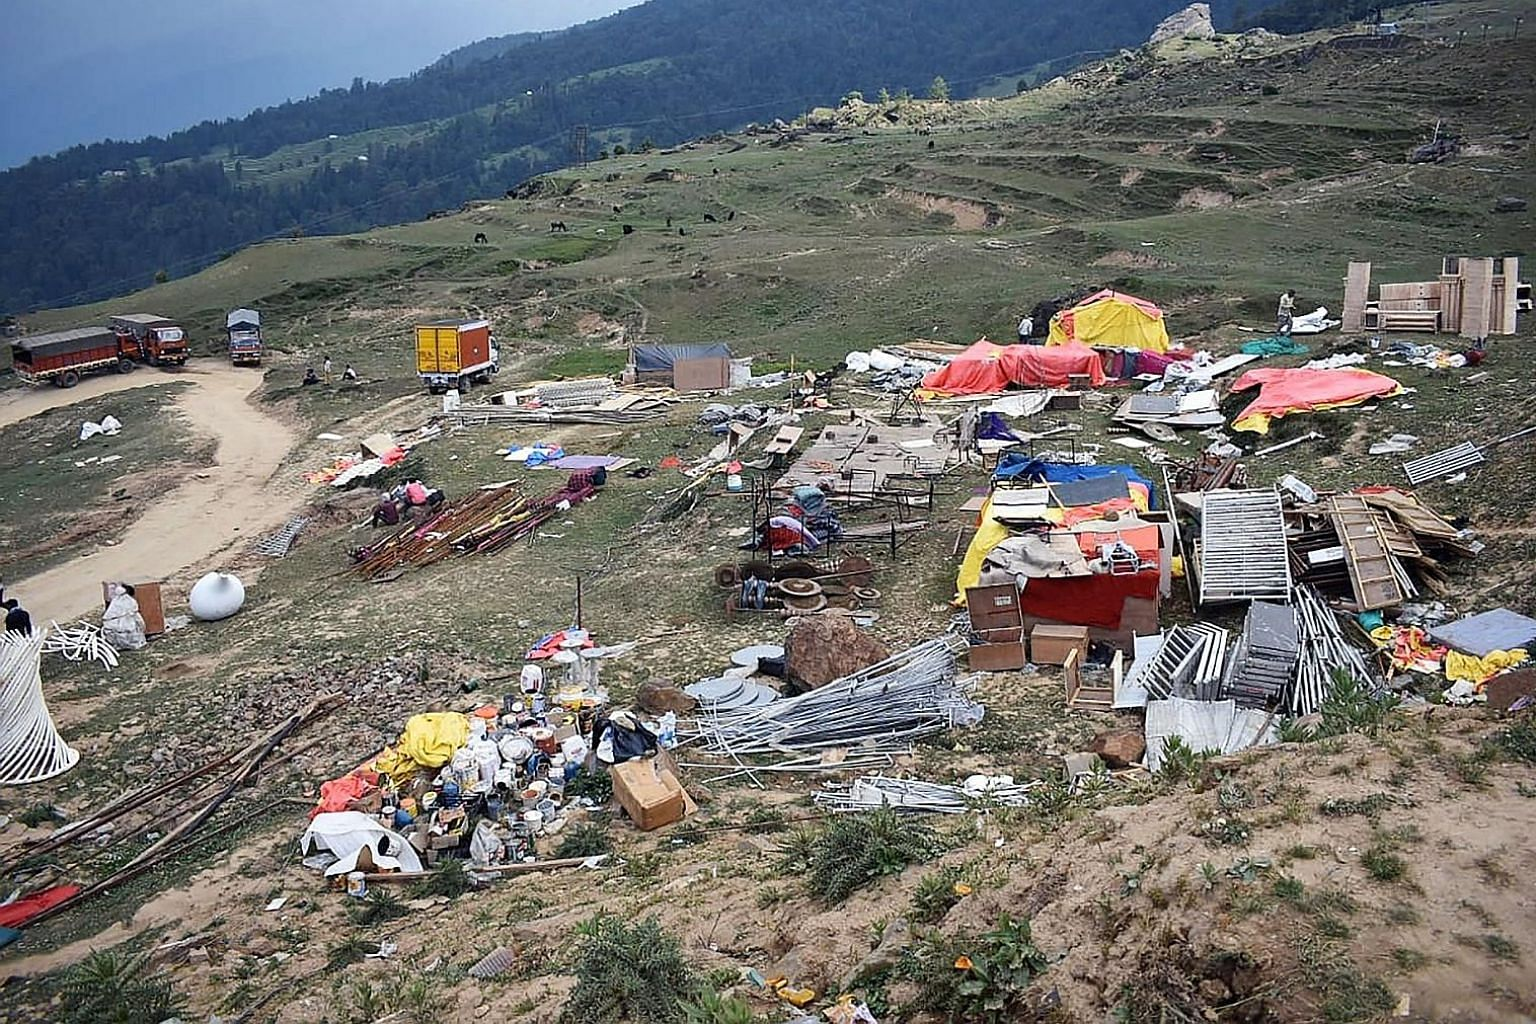 The Gupta family wanted the weddings (top) to be held between the Nanda Devi mountain and Kedarnath (above) and Badrinath temple towns. Rubbish littering a venue in Auli, Uttarakhand, on June 24, days after the large-scale weddings of two scions from